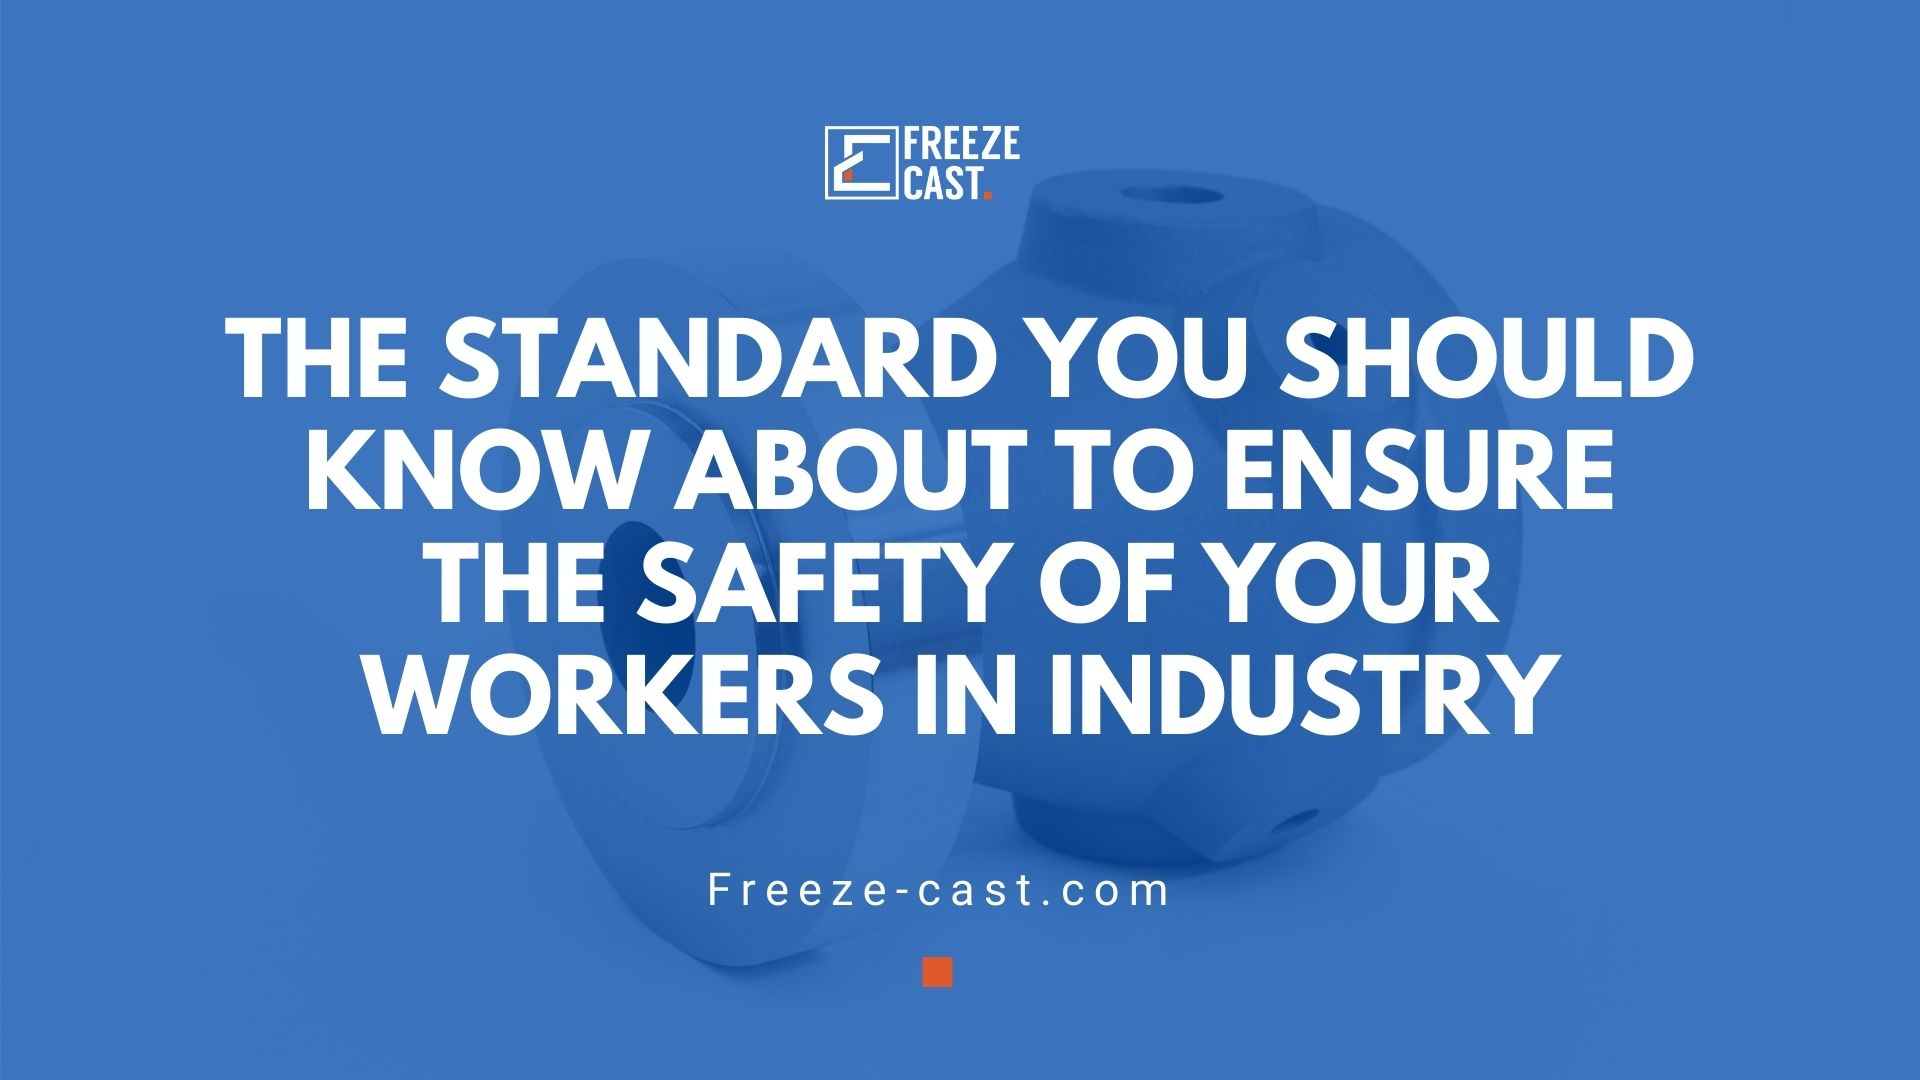 The Standard You Should Know About To Ensure The Safety of Your Workers In Industry